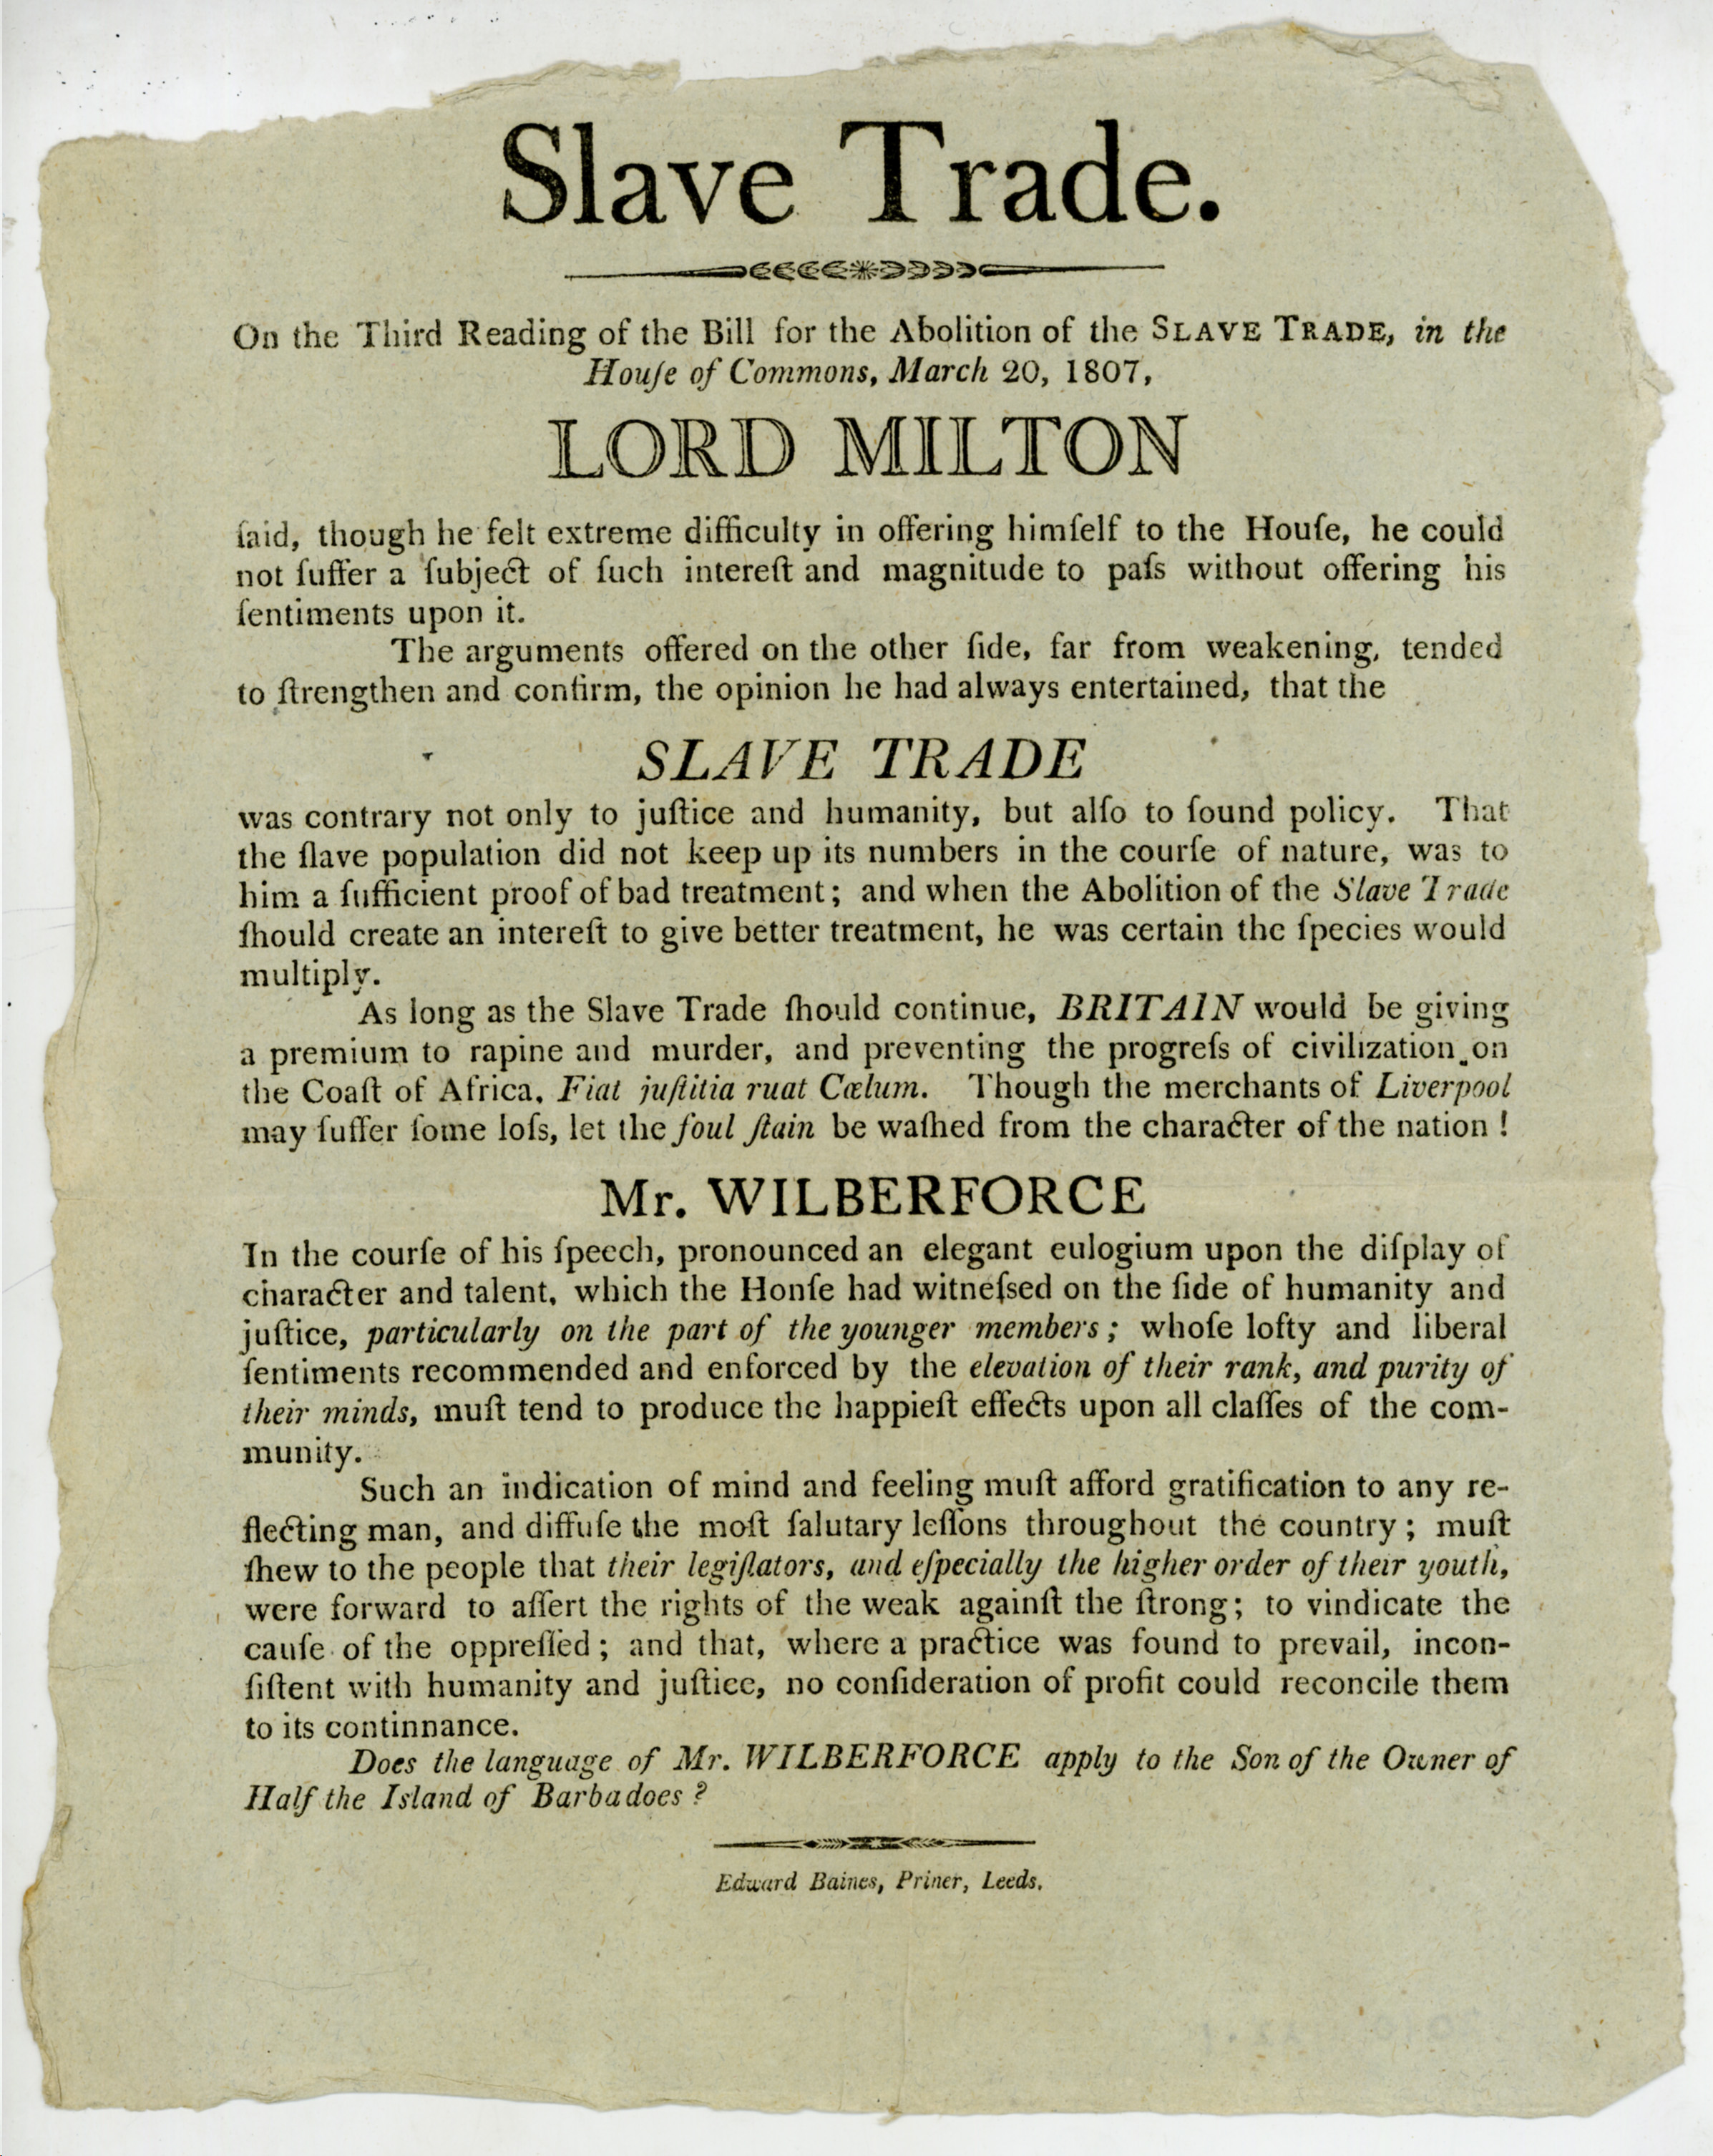 Printed paper with comments from Lord Milton and William Wilberforce on the third reading of the bill for the abolition of the slave trade.